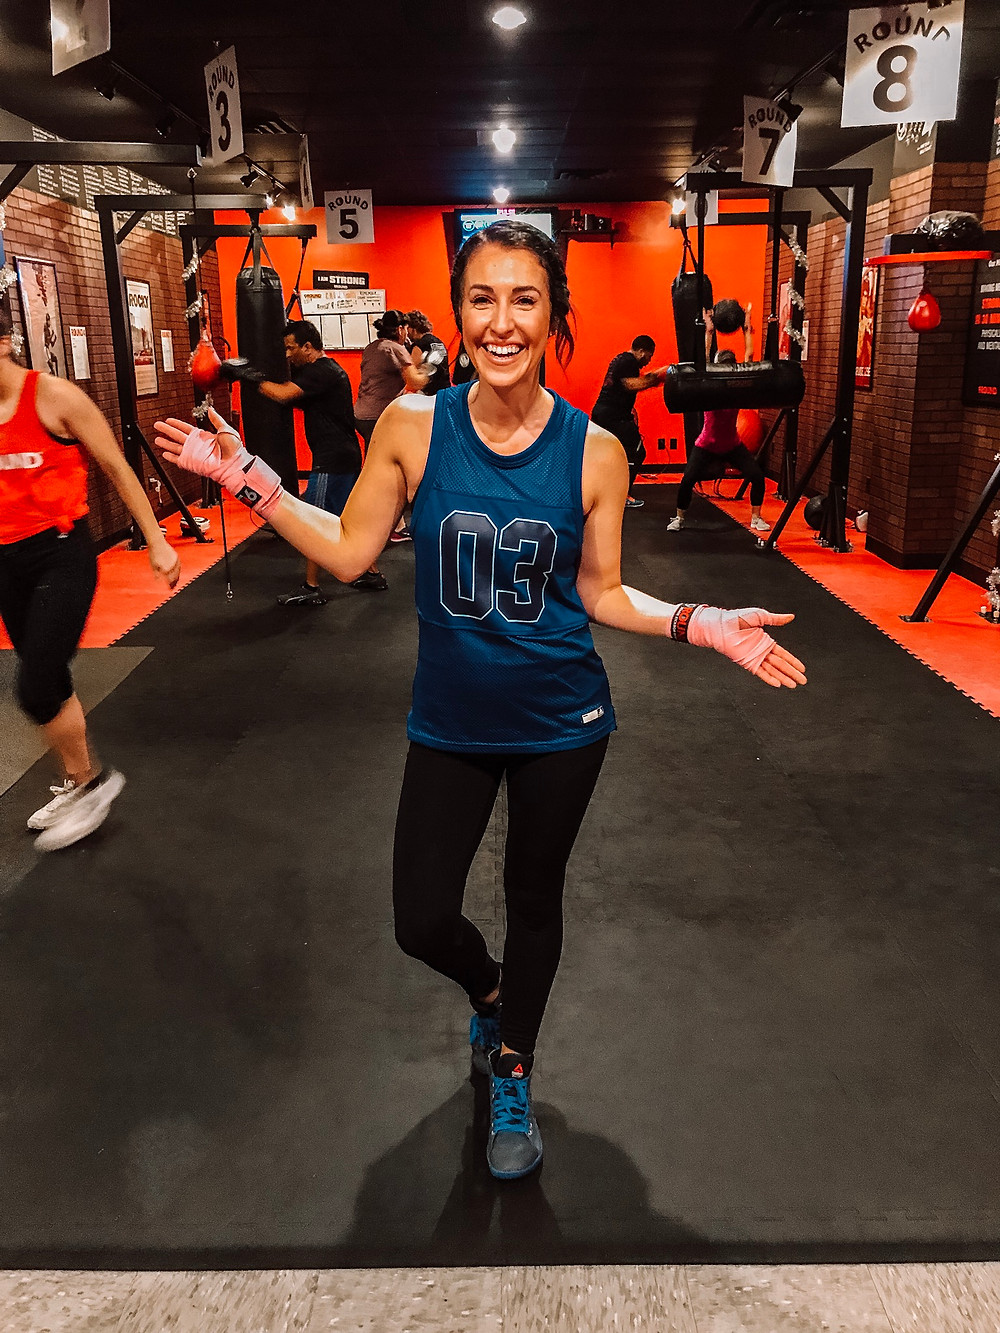 kickboxing, kickboxing fitness, workout video, 9round, Indianapolis, indy blogger, fitness blogger